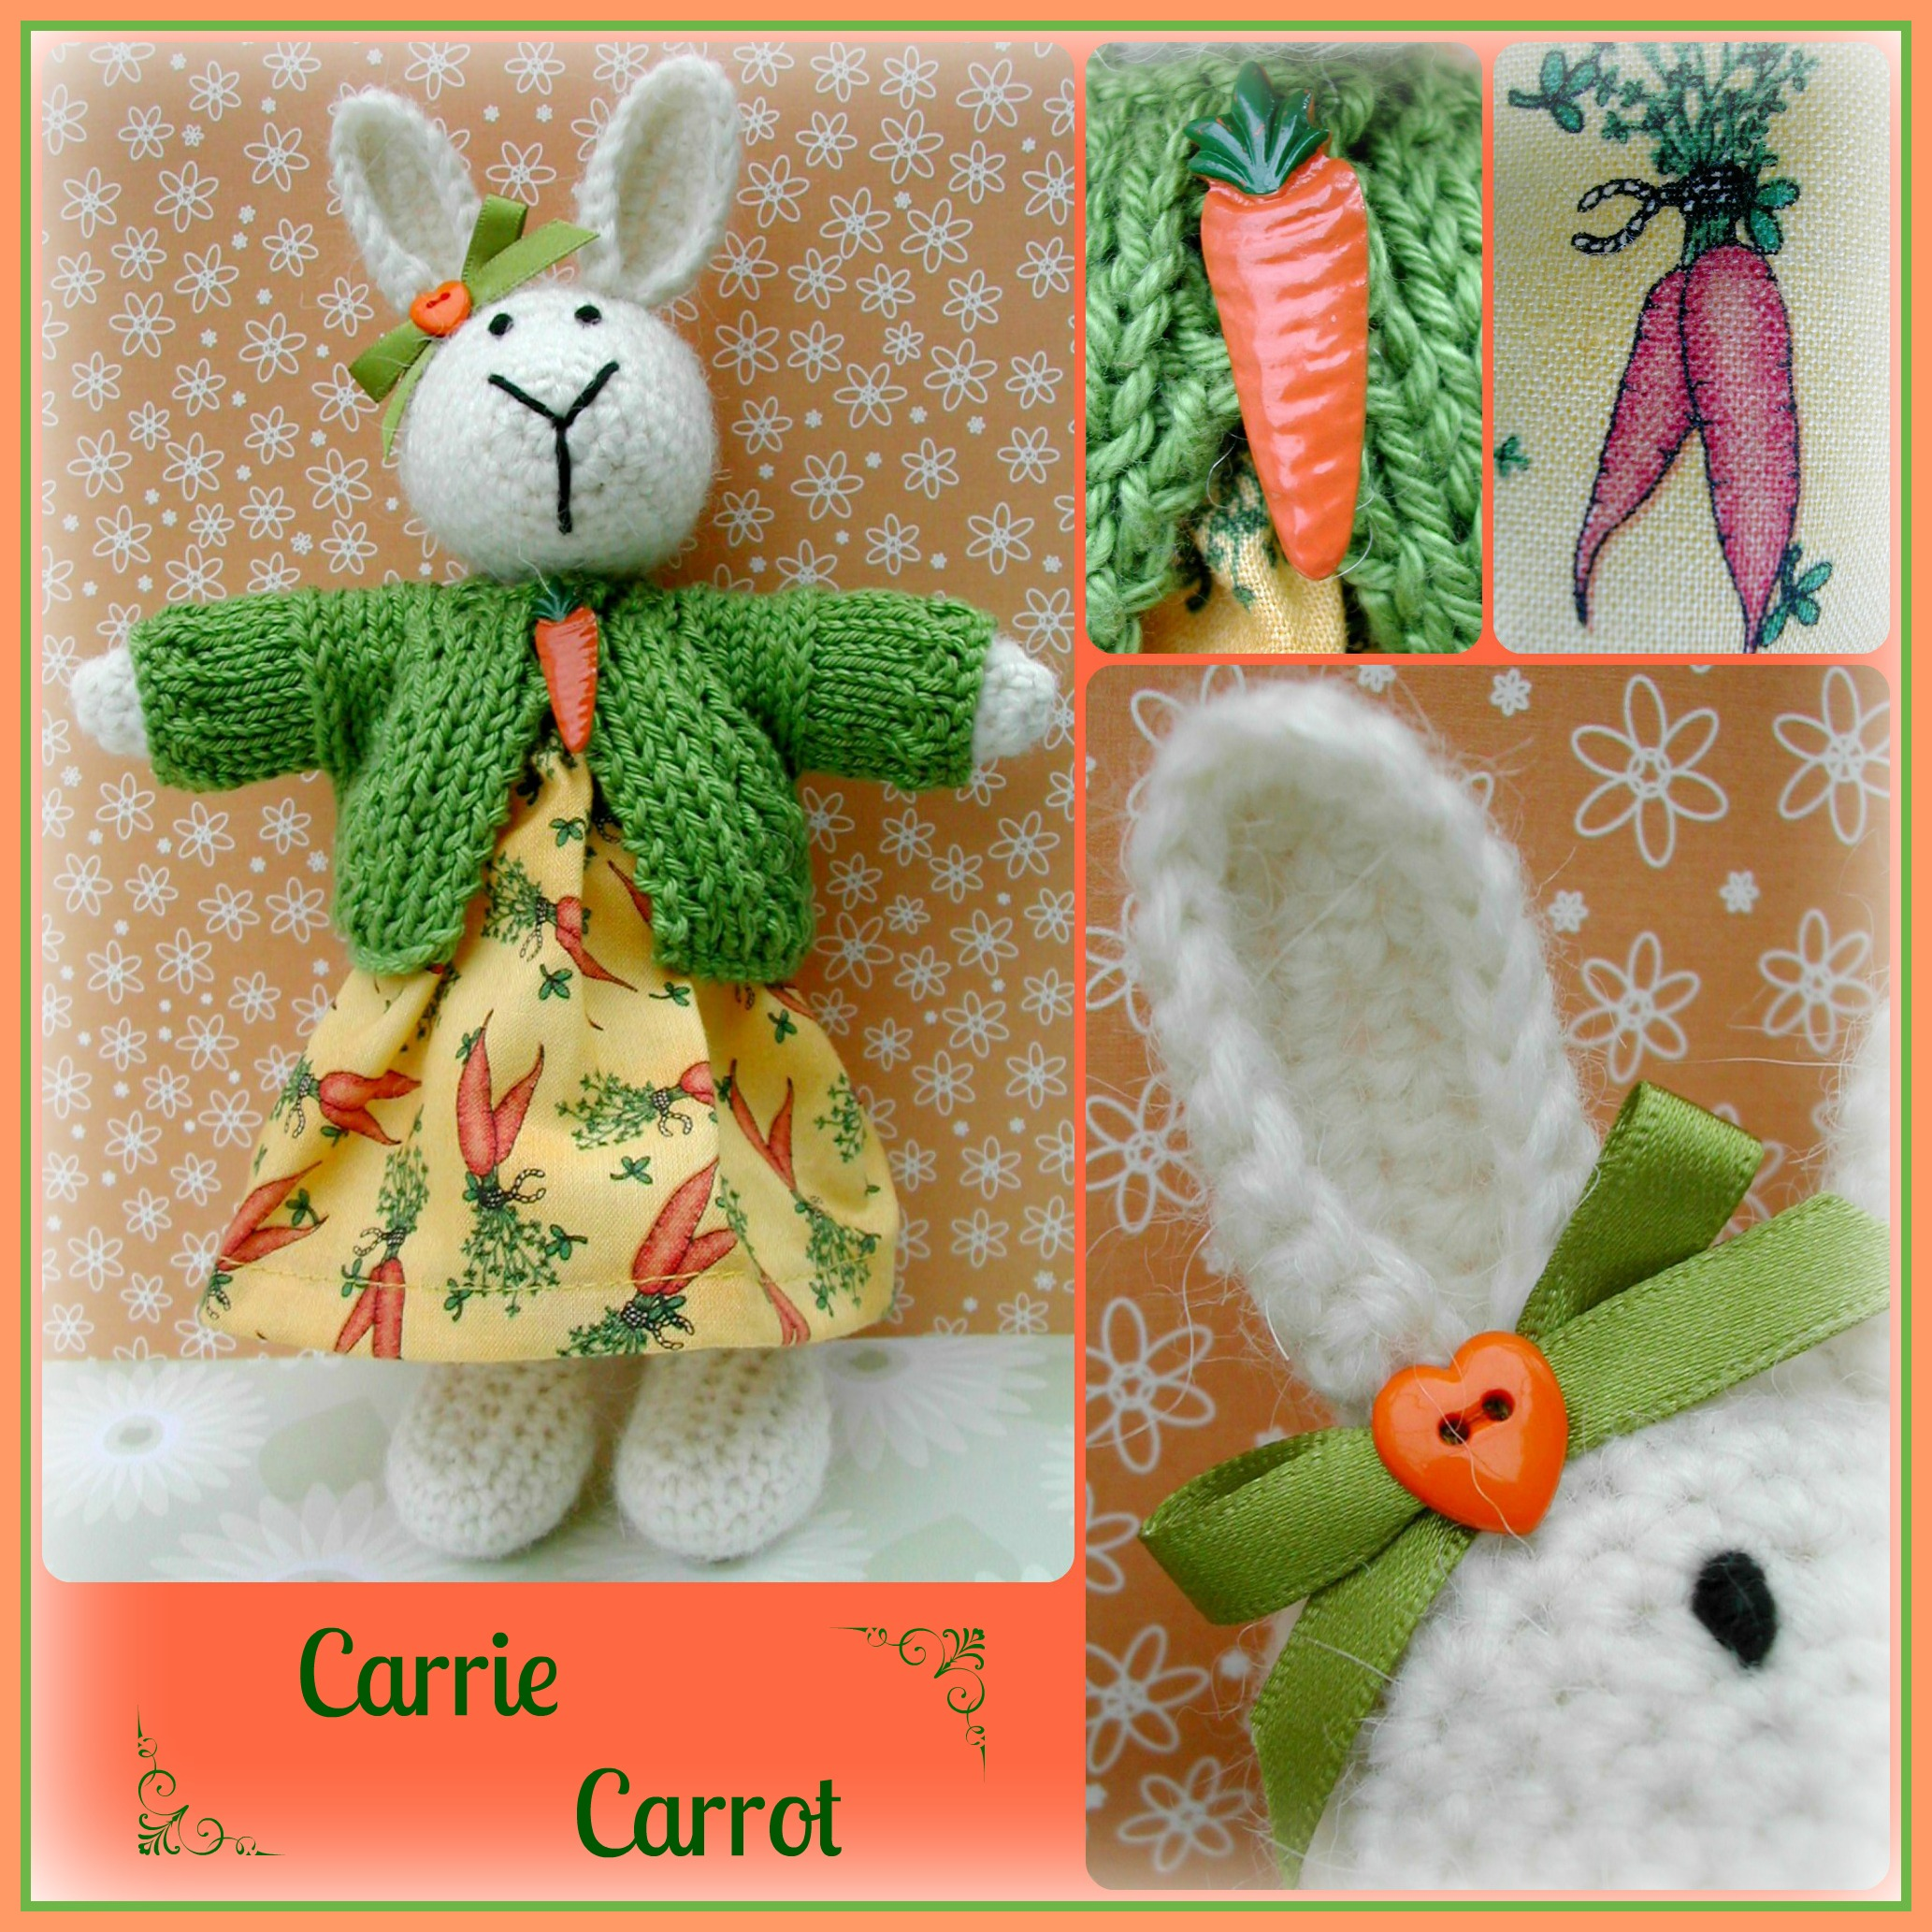 Carrie Carrot Collage